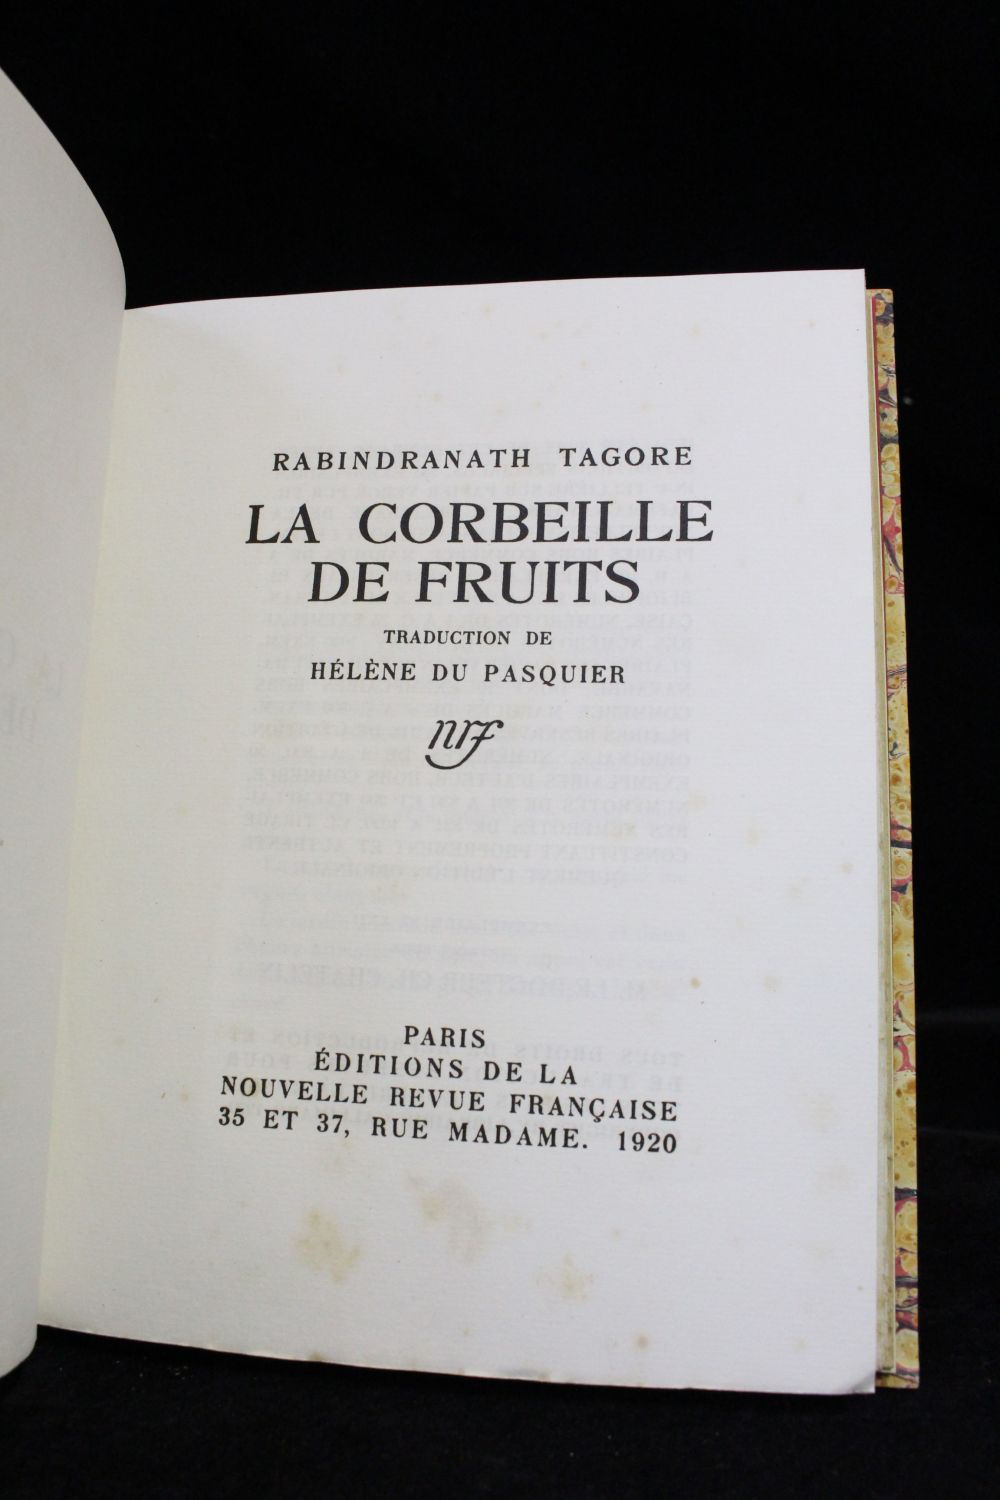 tagore la corbeille de fruits first edition edition. Black Bedroom Furniture Sets. Home Design Ideas